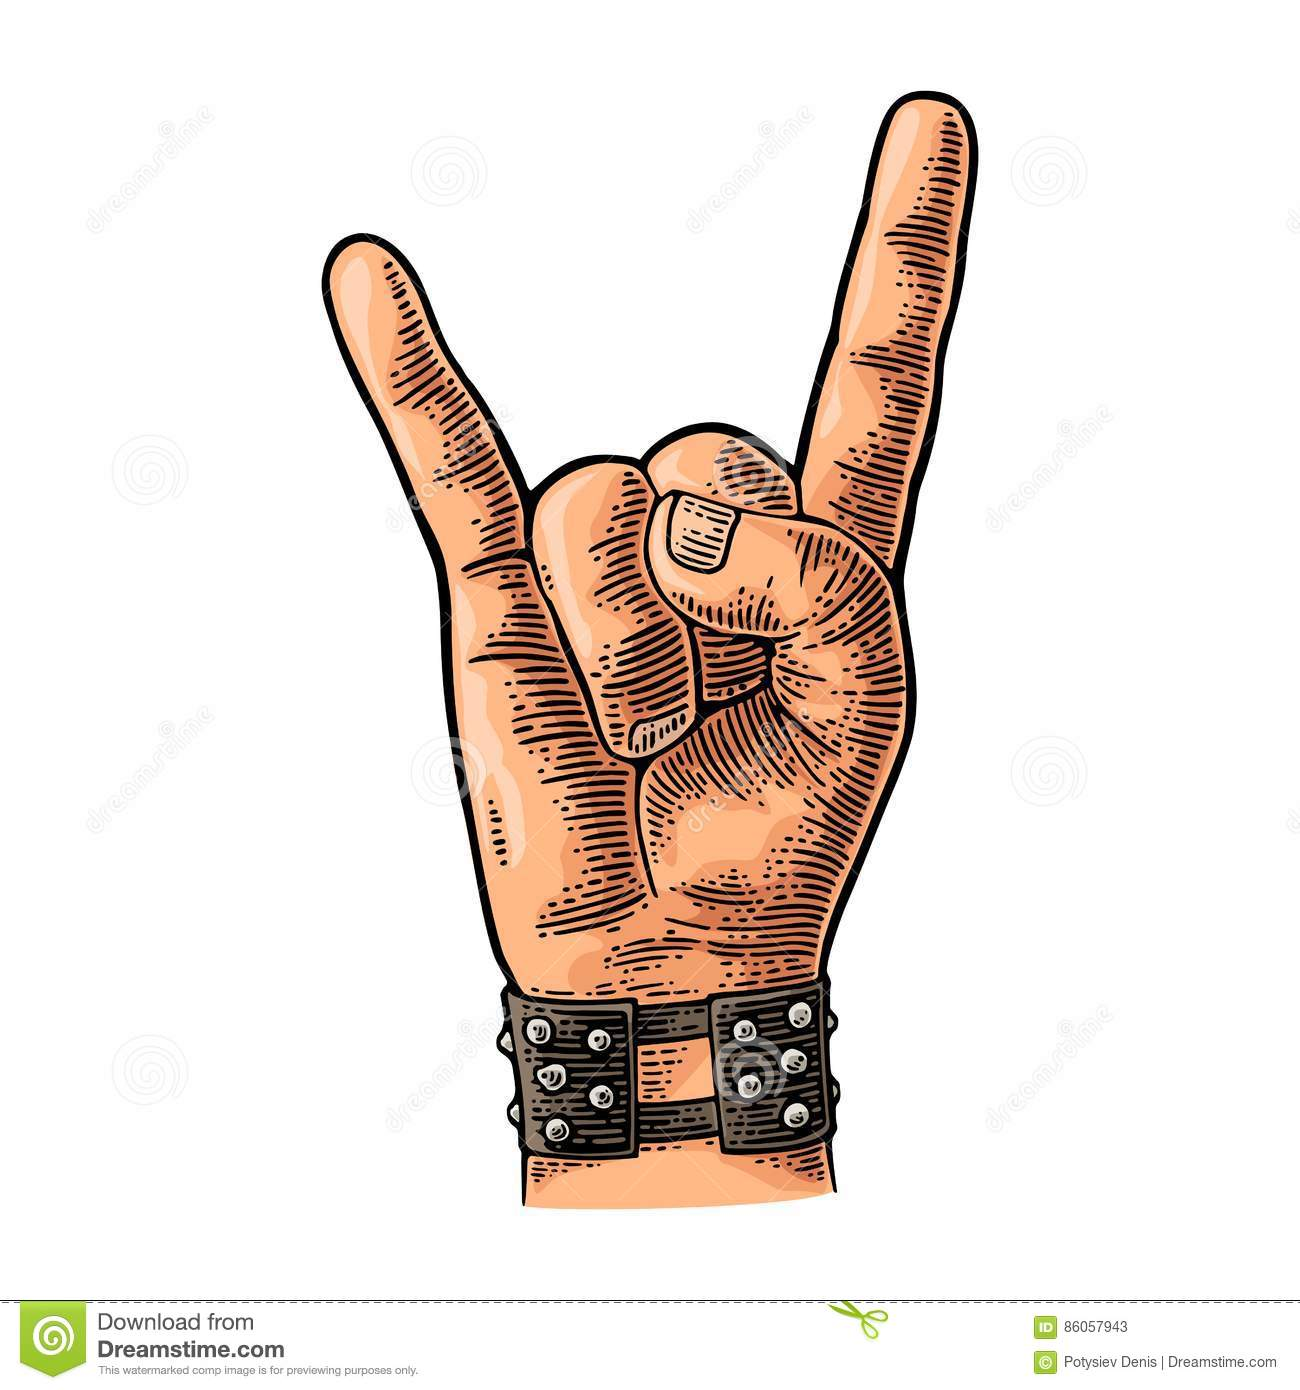 Heavy metal devil horns hand sign stock illustrations 73 heavy rock and roll sign vector black vintage engraved illustration rock and roll sign biocorpaavc Gallery